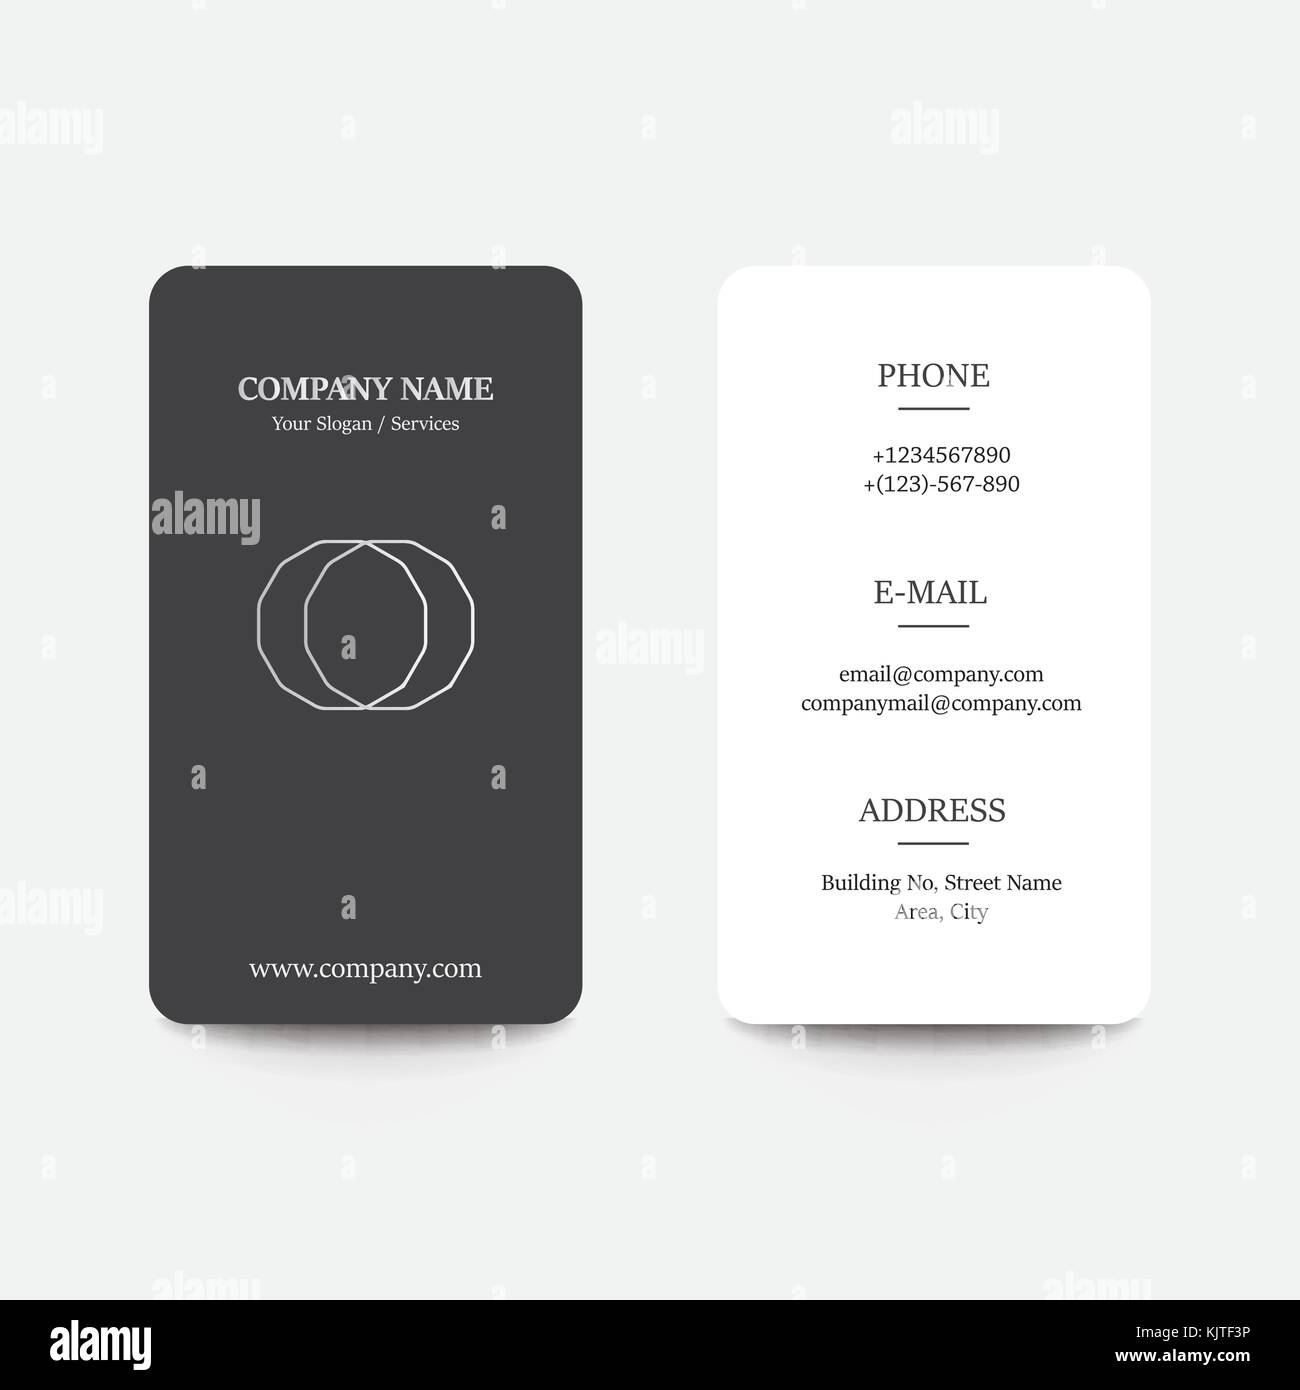 clean flat design business card with creative concepts and modern